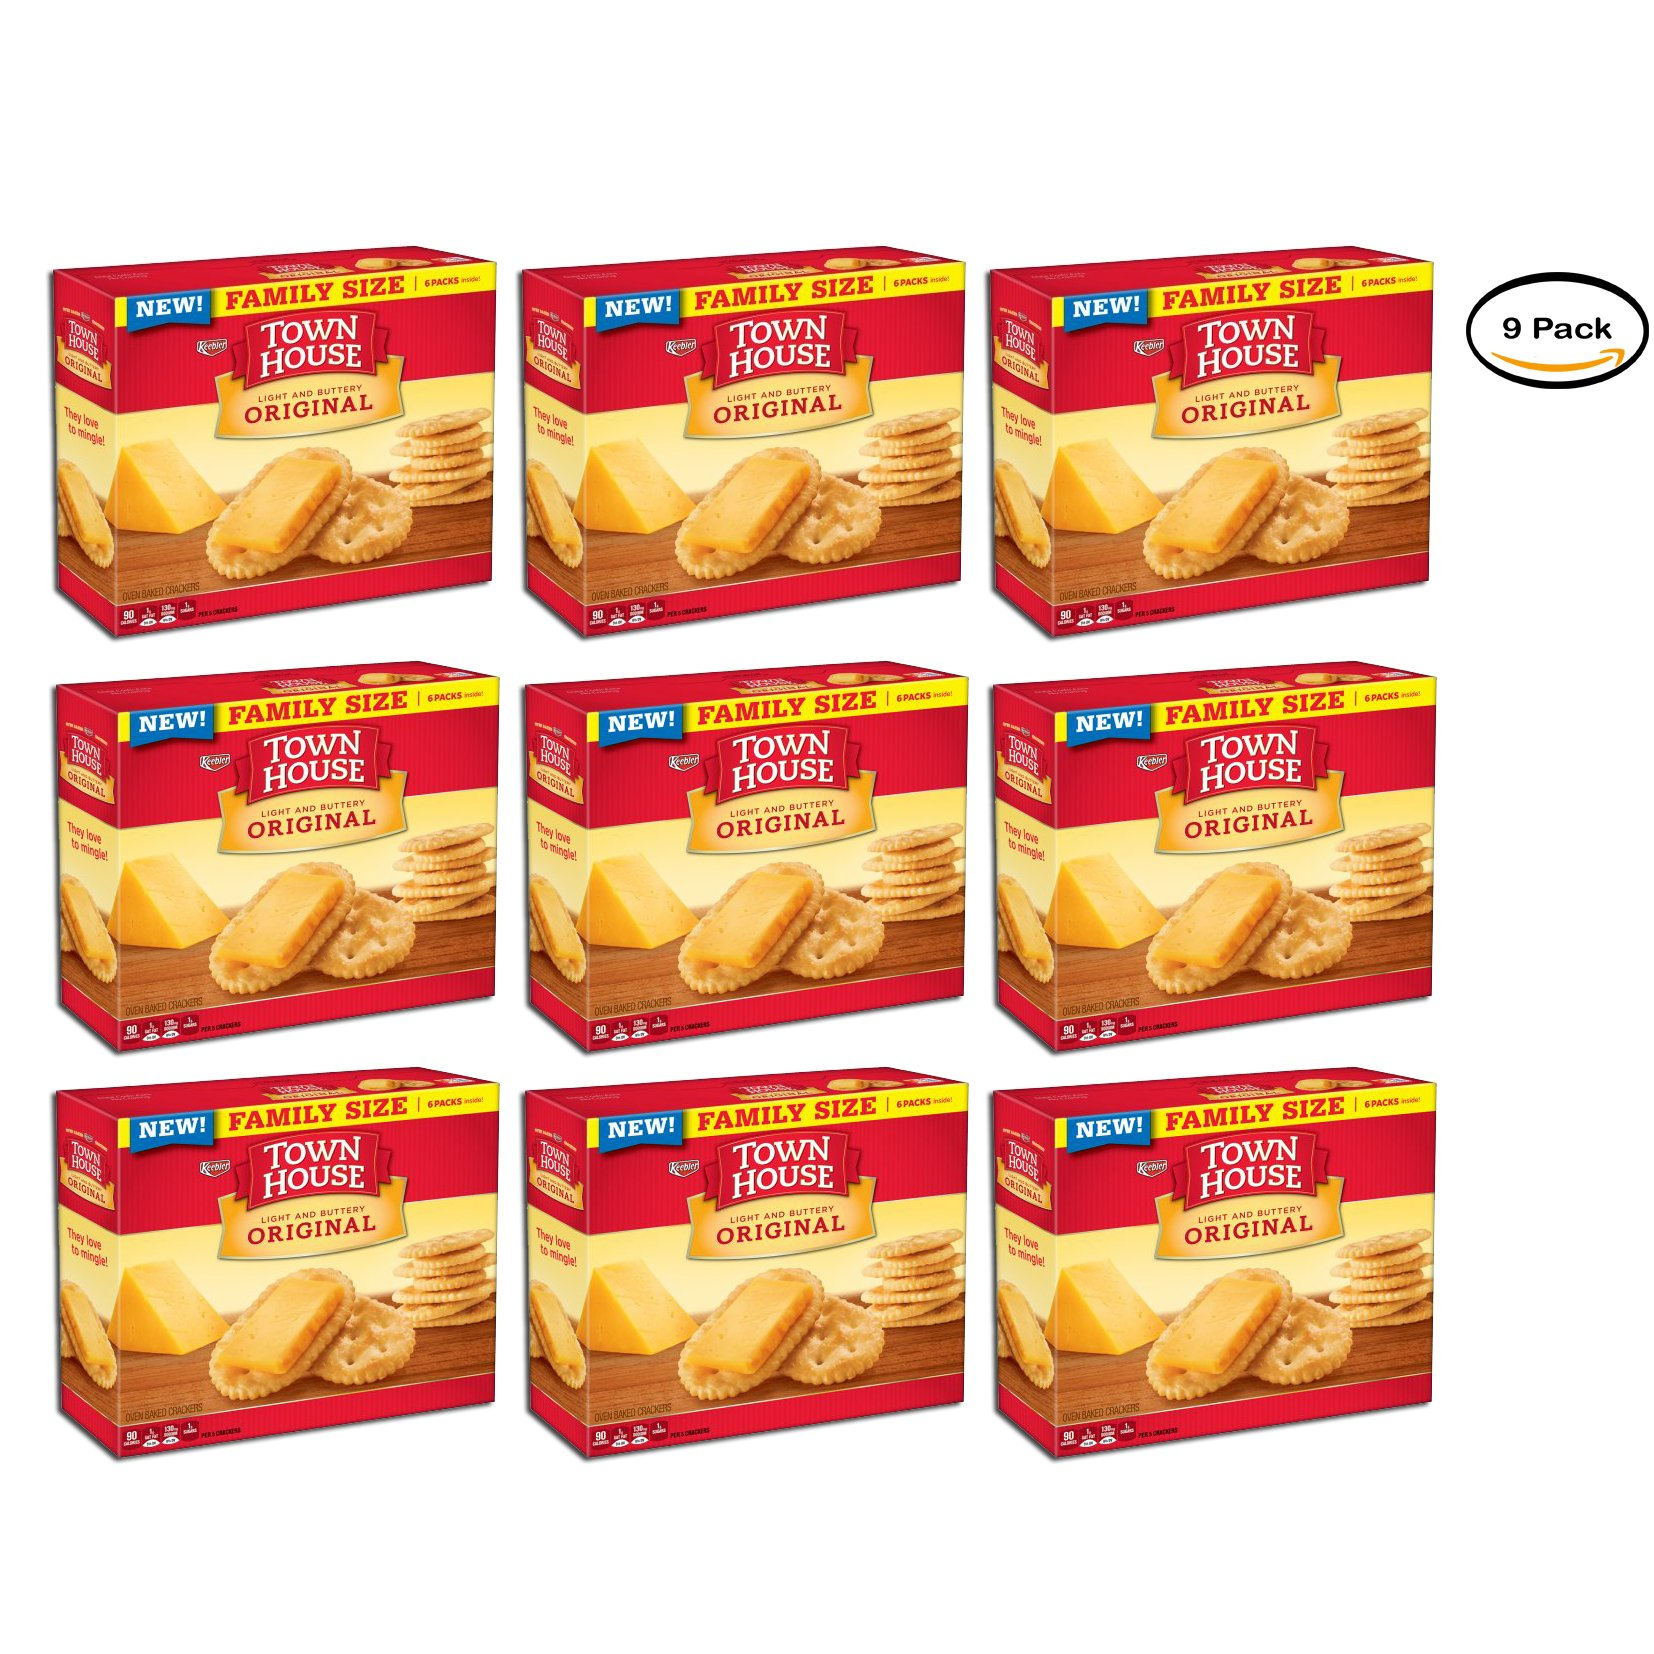 PACK OF 9 - Keebler Town House Original Light and Buttery Oven Baked Crackers 20.7 oz. Box